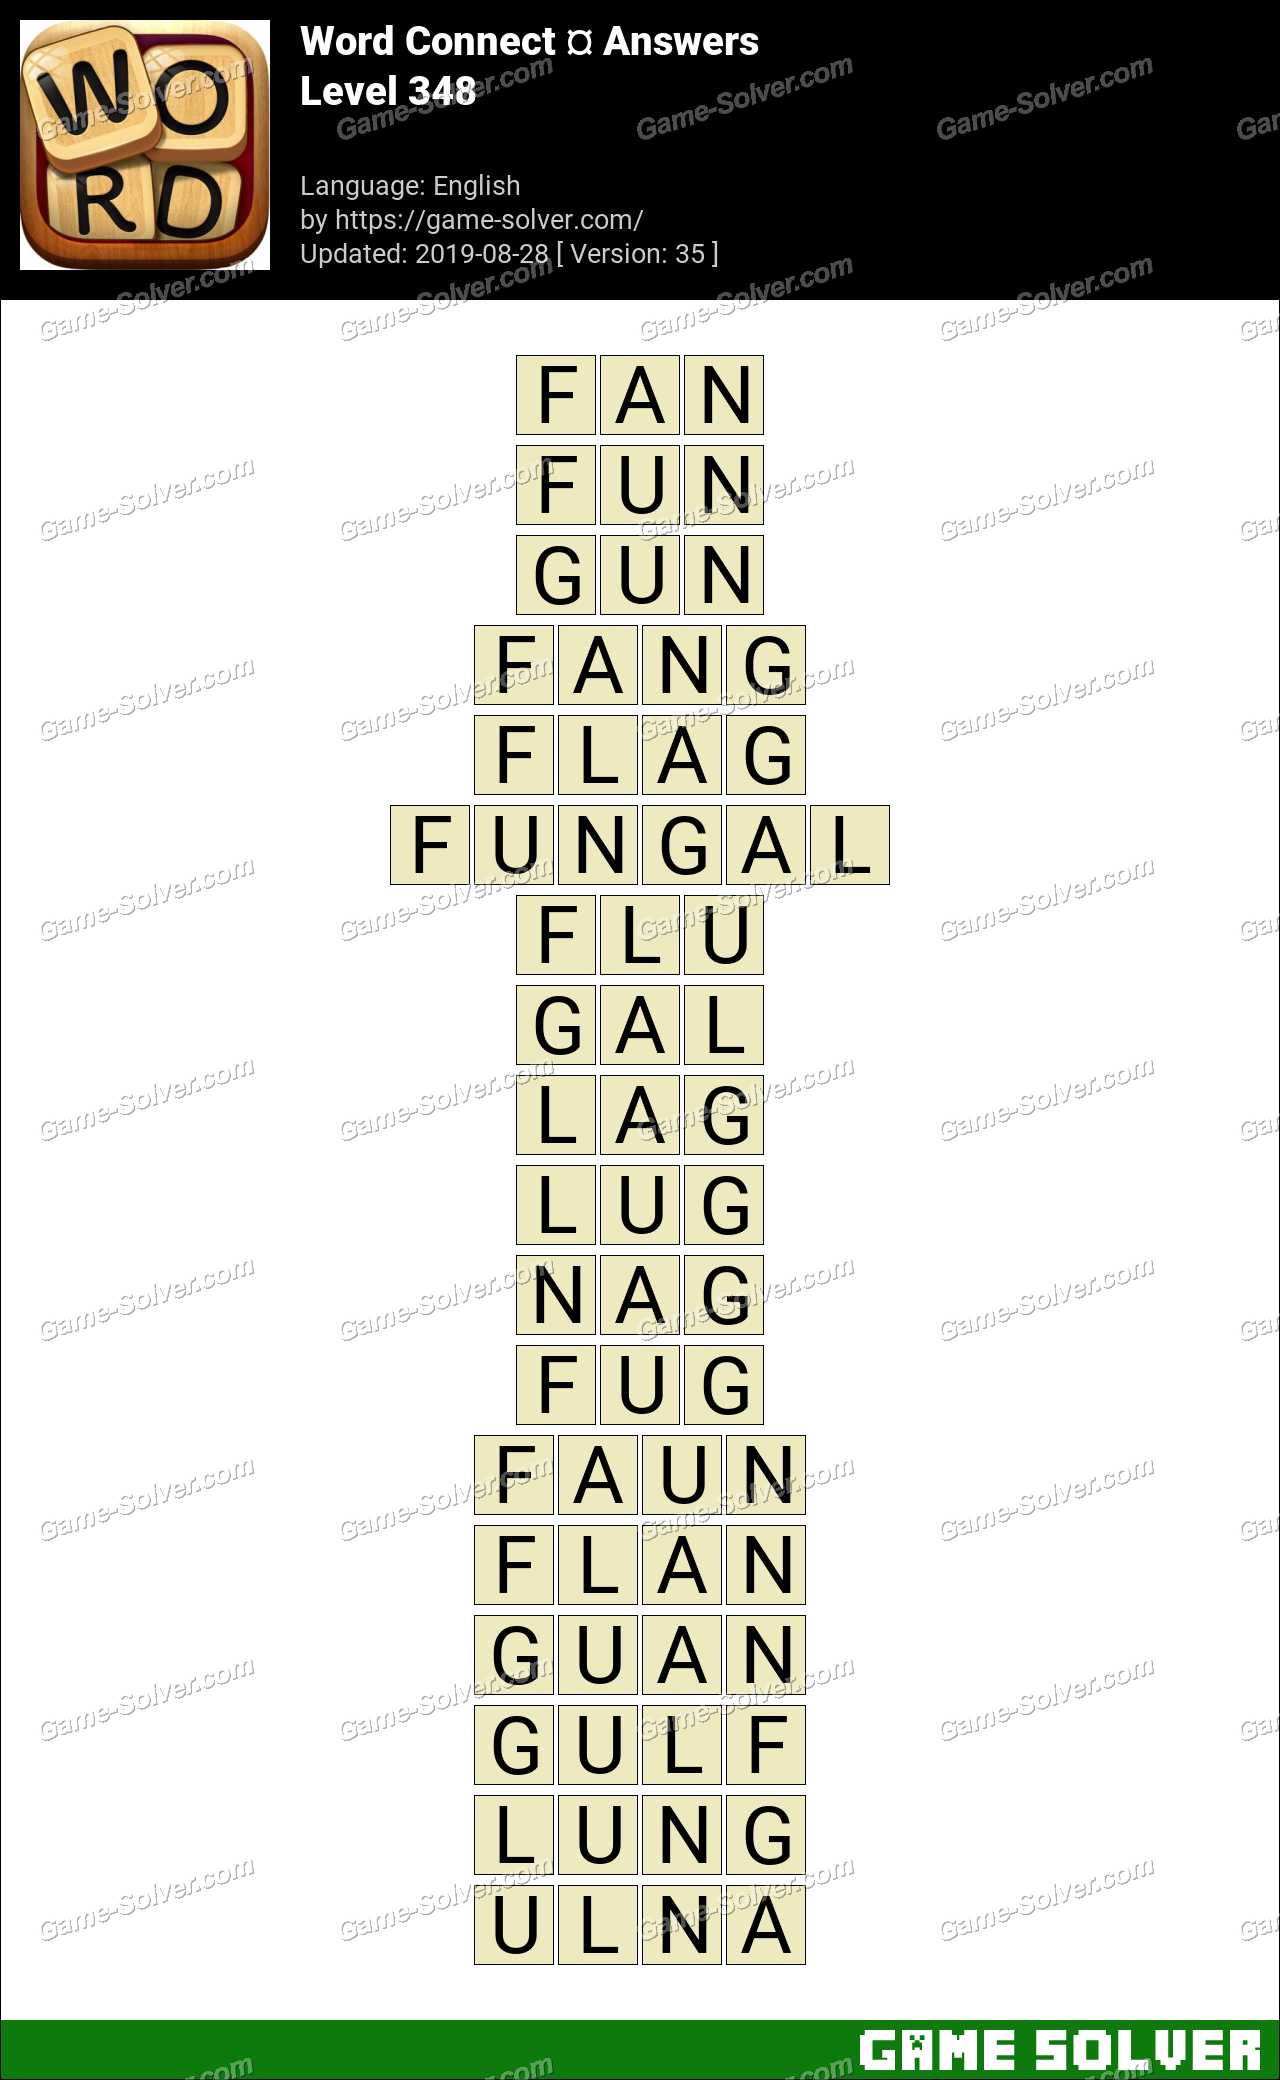 Word Connect Level 348 Answers